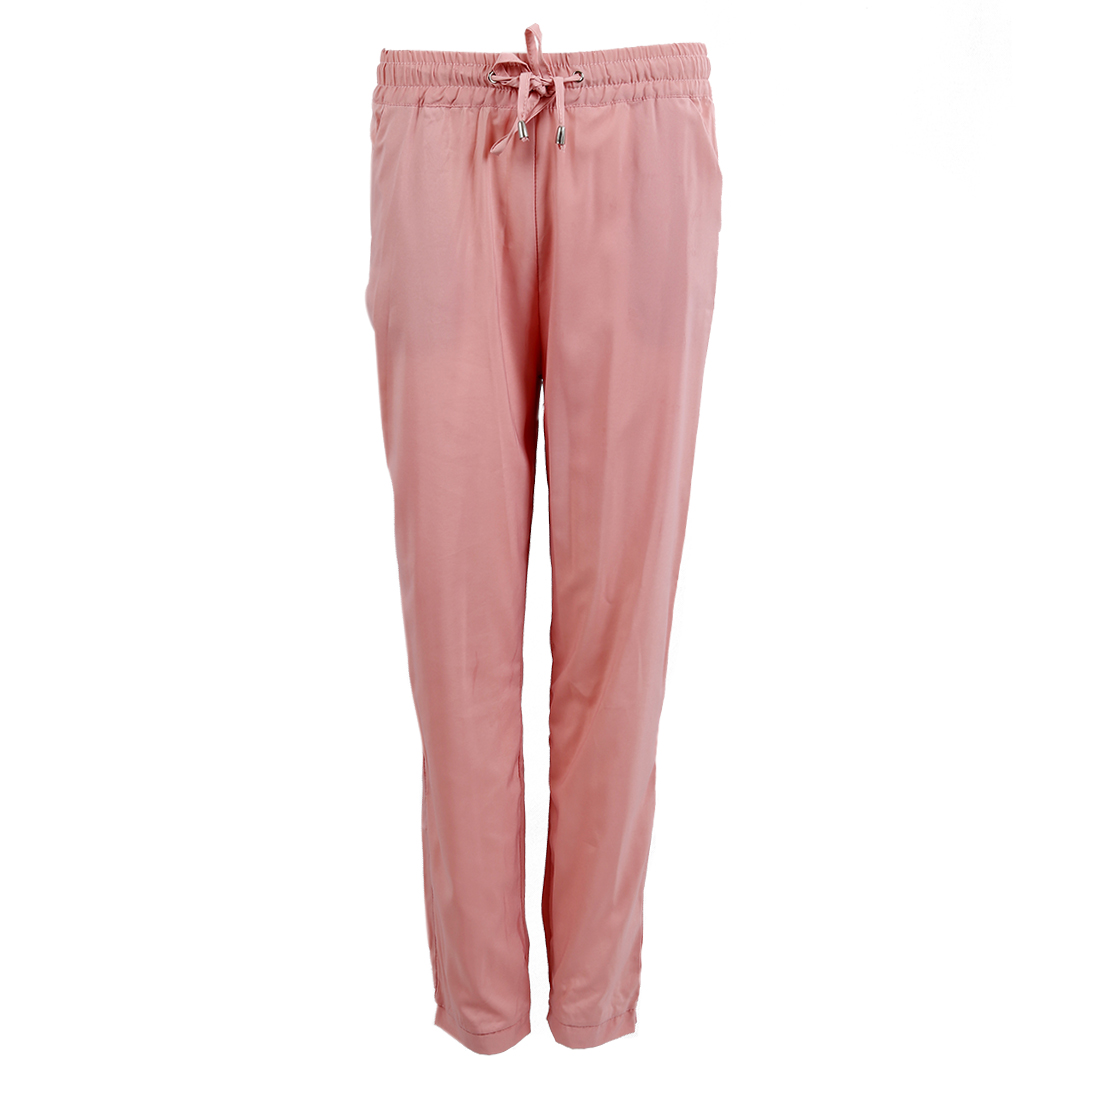 Casual Women Pants Solid Color Drawstring Elastic Waist Comfy Full Length Chiffon Harem Pants